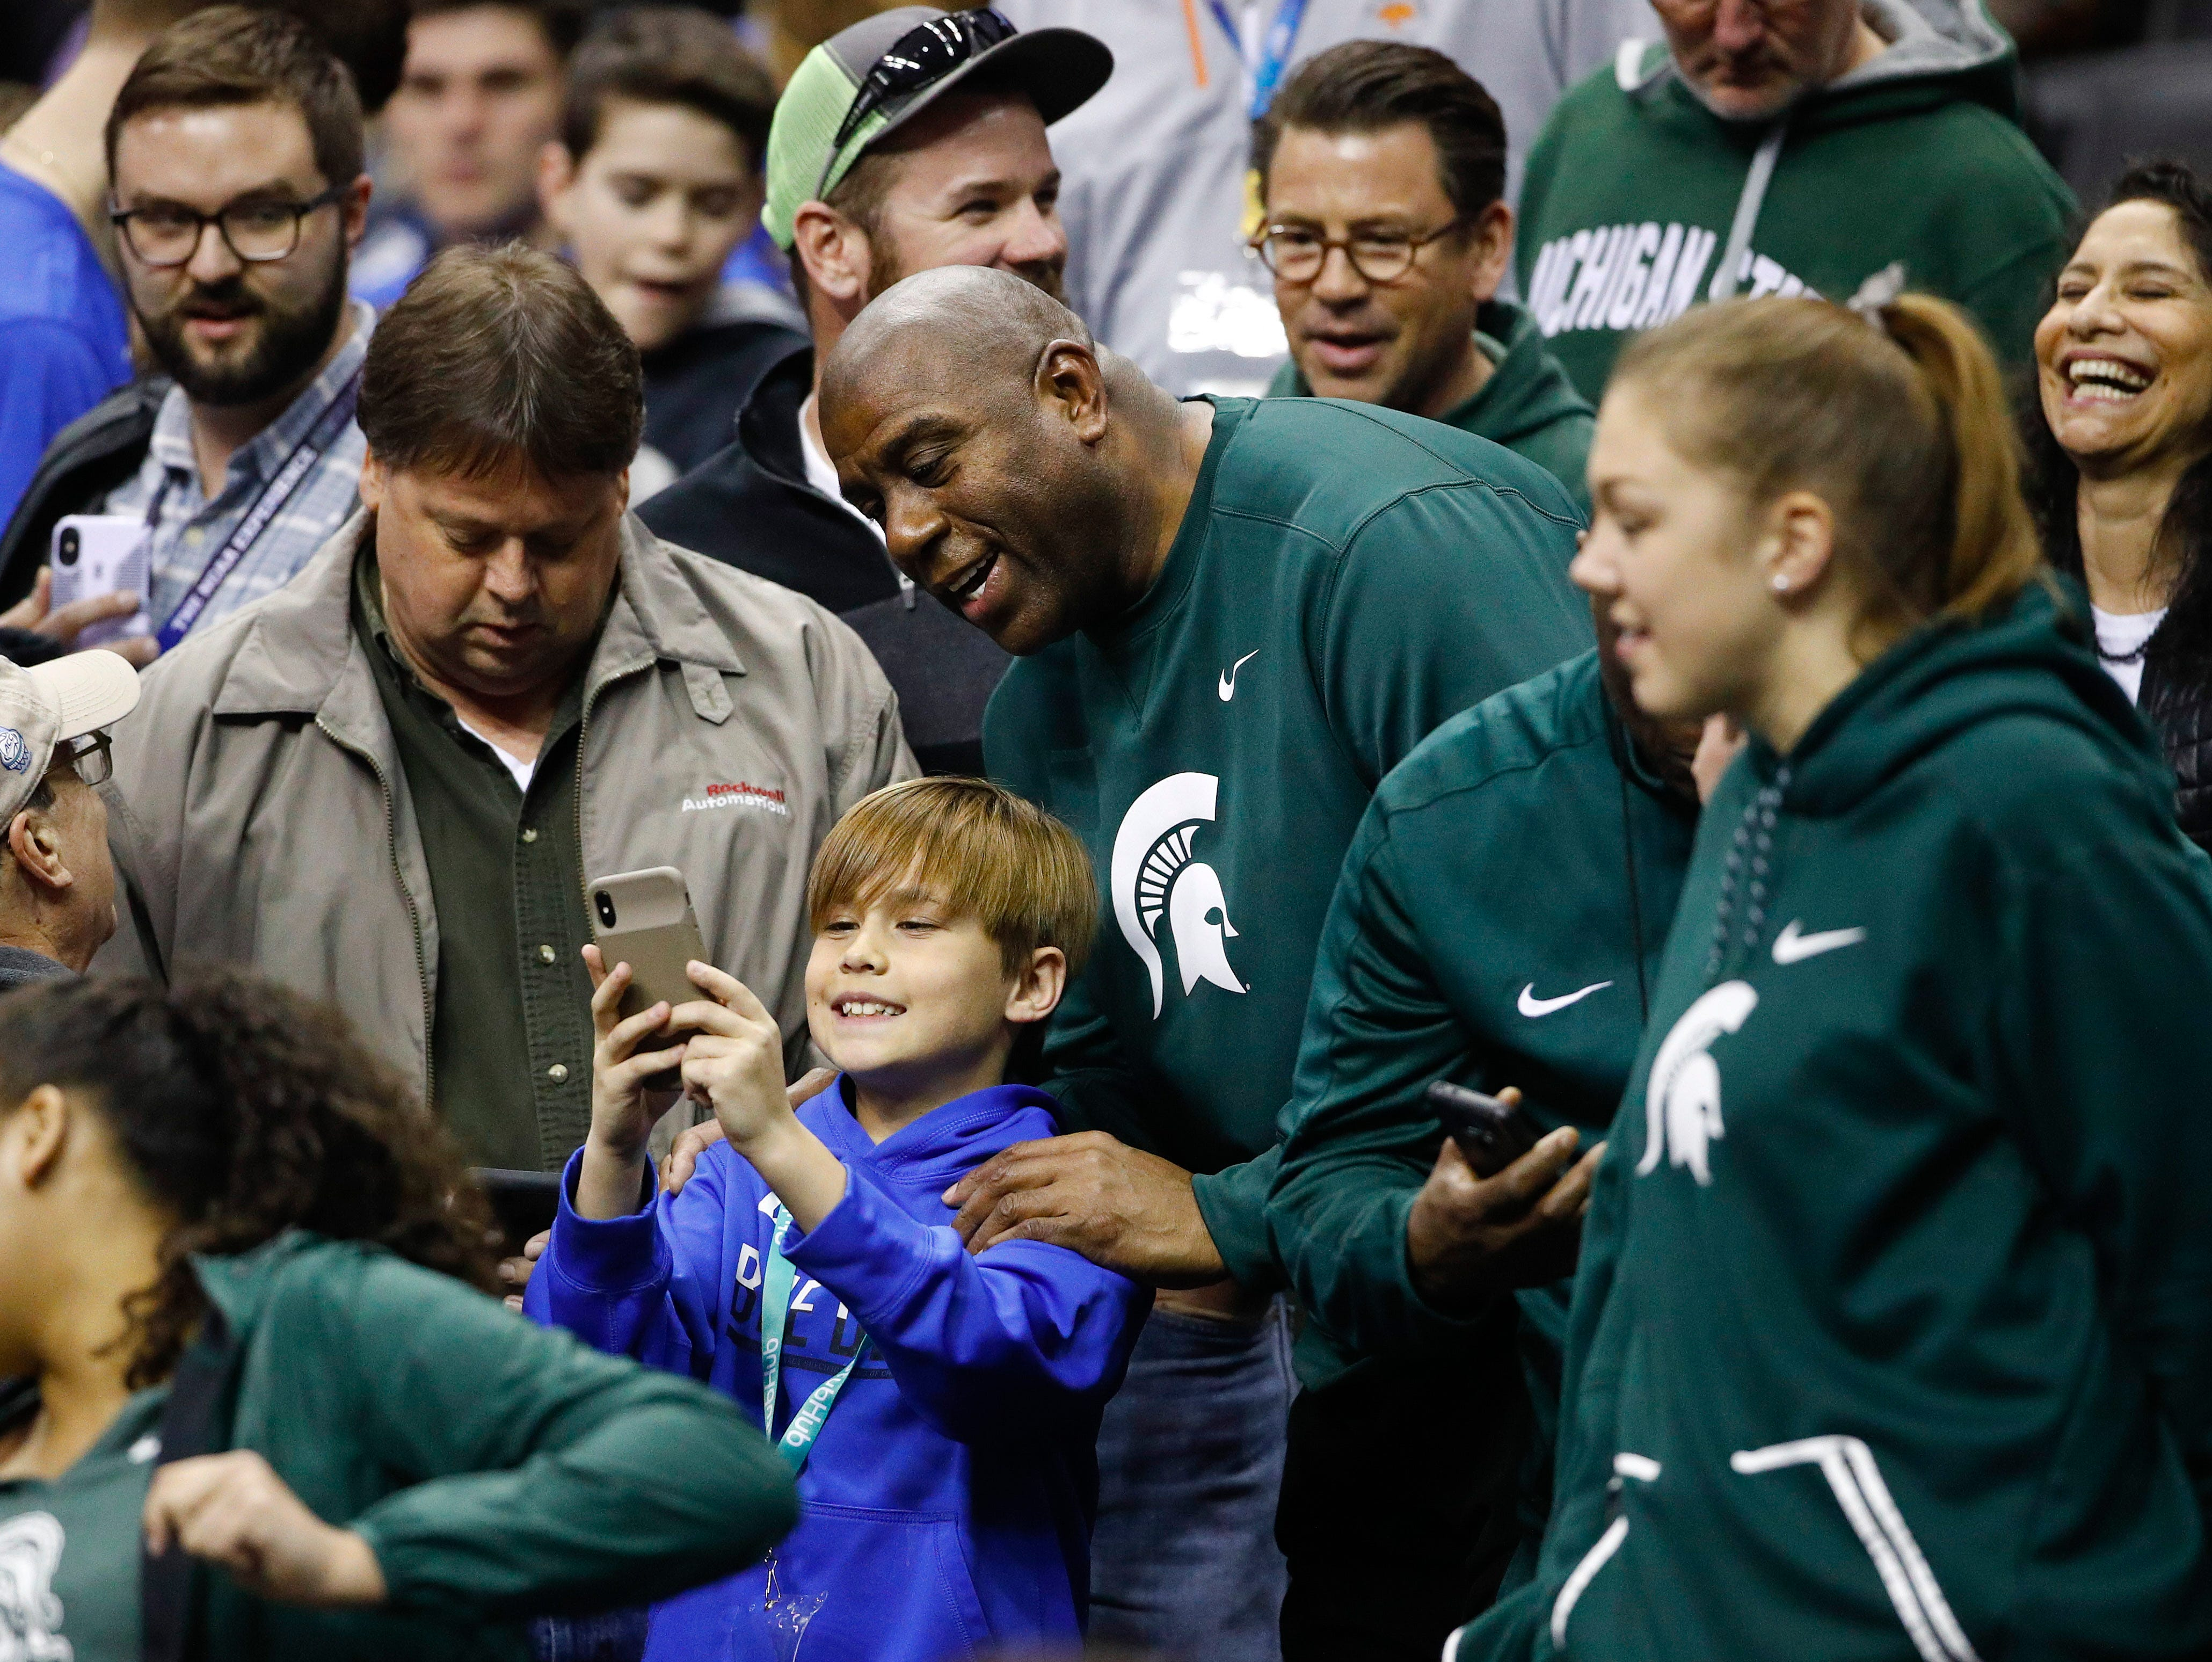 Los Angeles Lakers president and Michigan State alumnus Magic Johnson, center, poses for photos before an NCAA men's East Regional final college basketball game between Michigan State and Duke in Washington, Sunday, March 31, 2019. (AP Photo/Patrick Semansky)